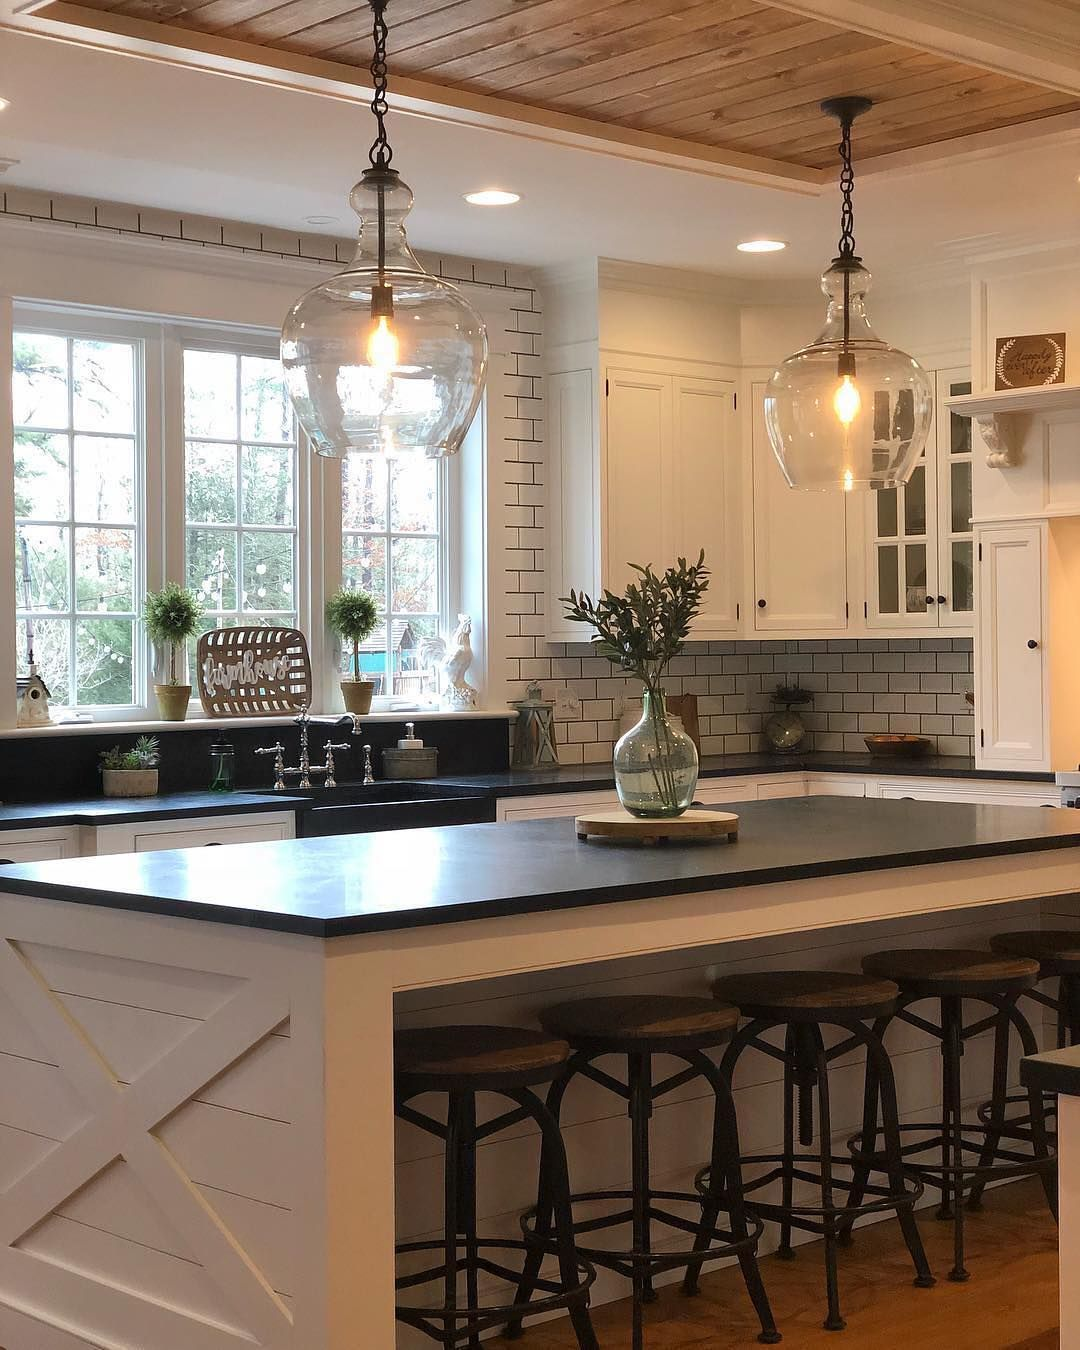 Farmhouse Fanatics On Instagram Let Us Know Your Thoughts On This Farmhousekitchen Modern Farmhouse Kitchens Home Decor Kitchen Eclectic Farmhouse